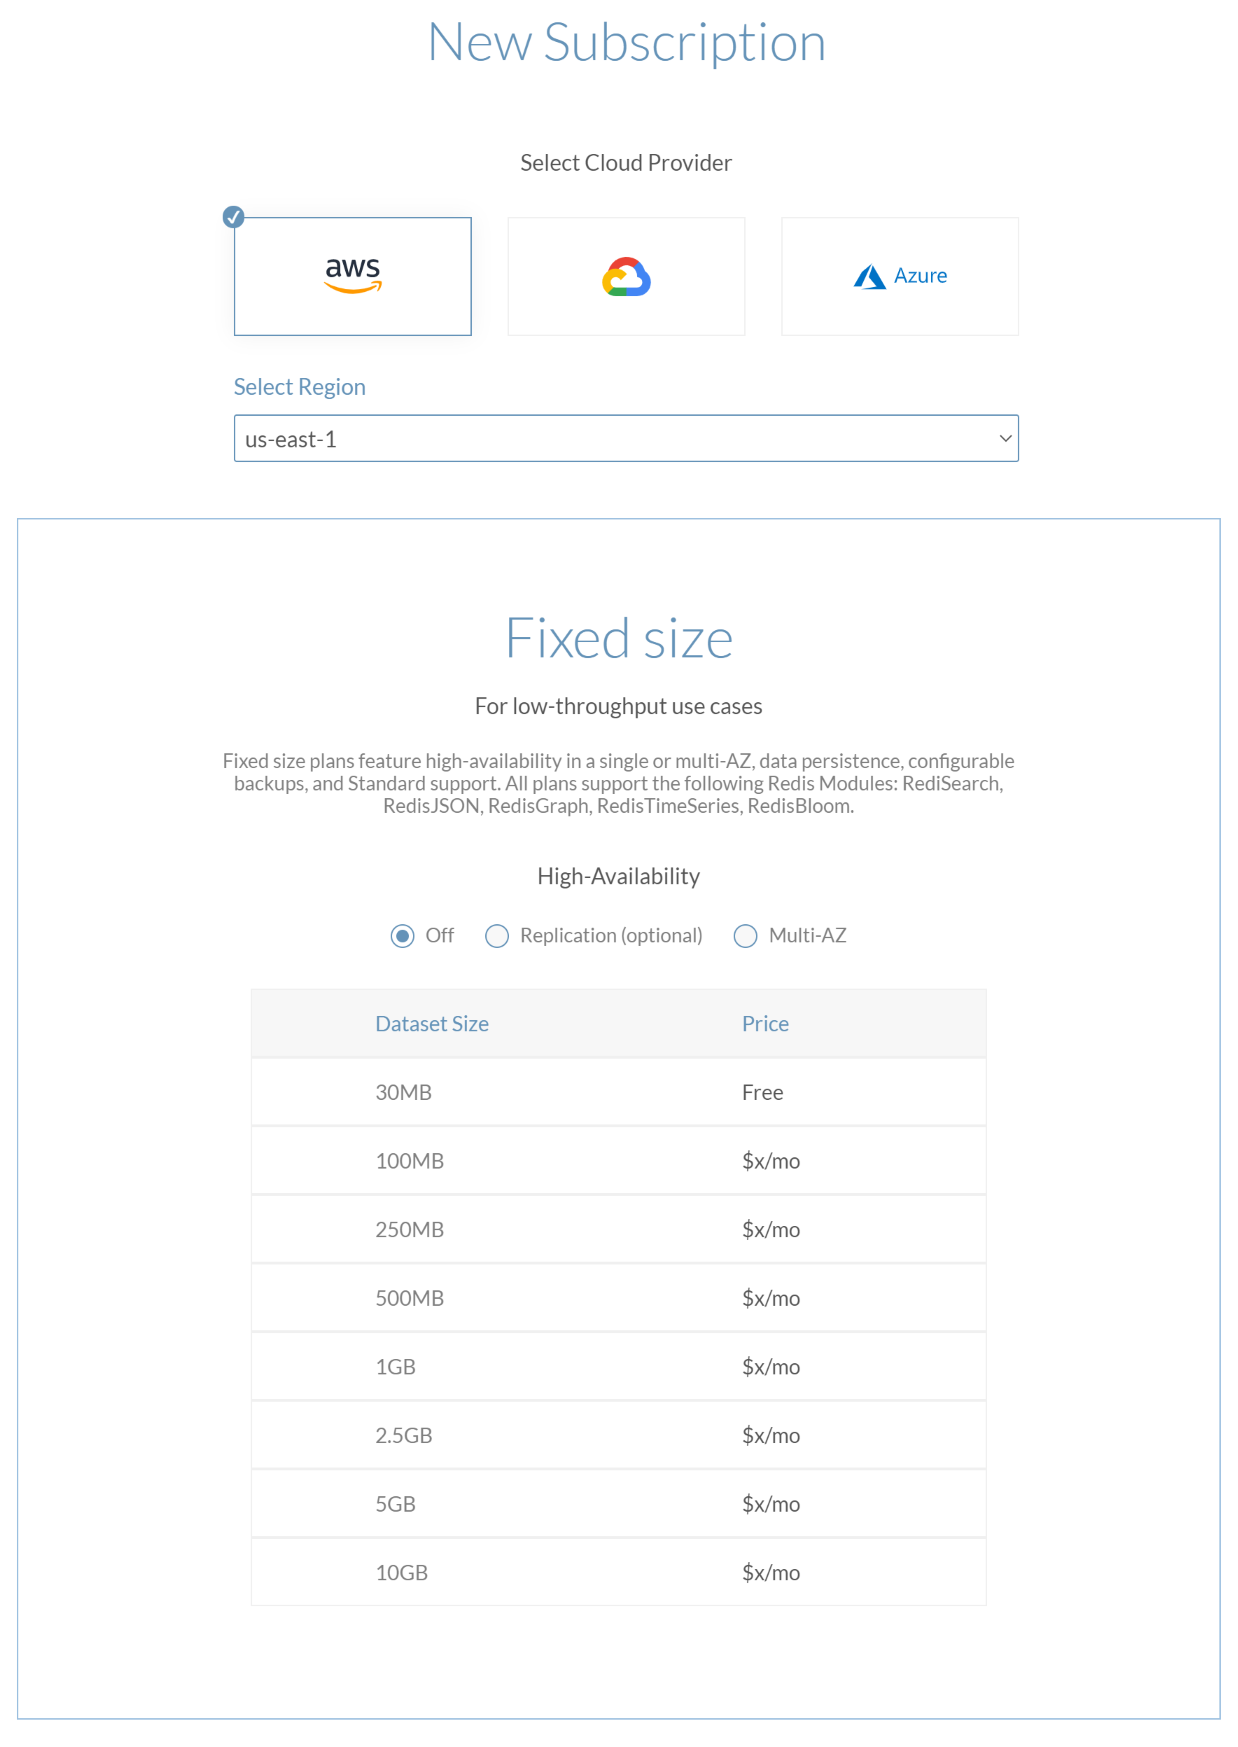 The Fixed Size Plan section of the Create Subscription screen.